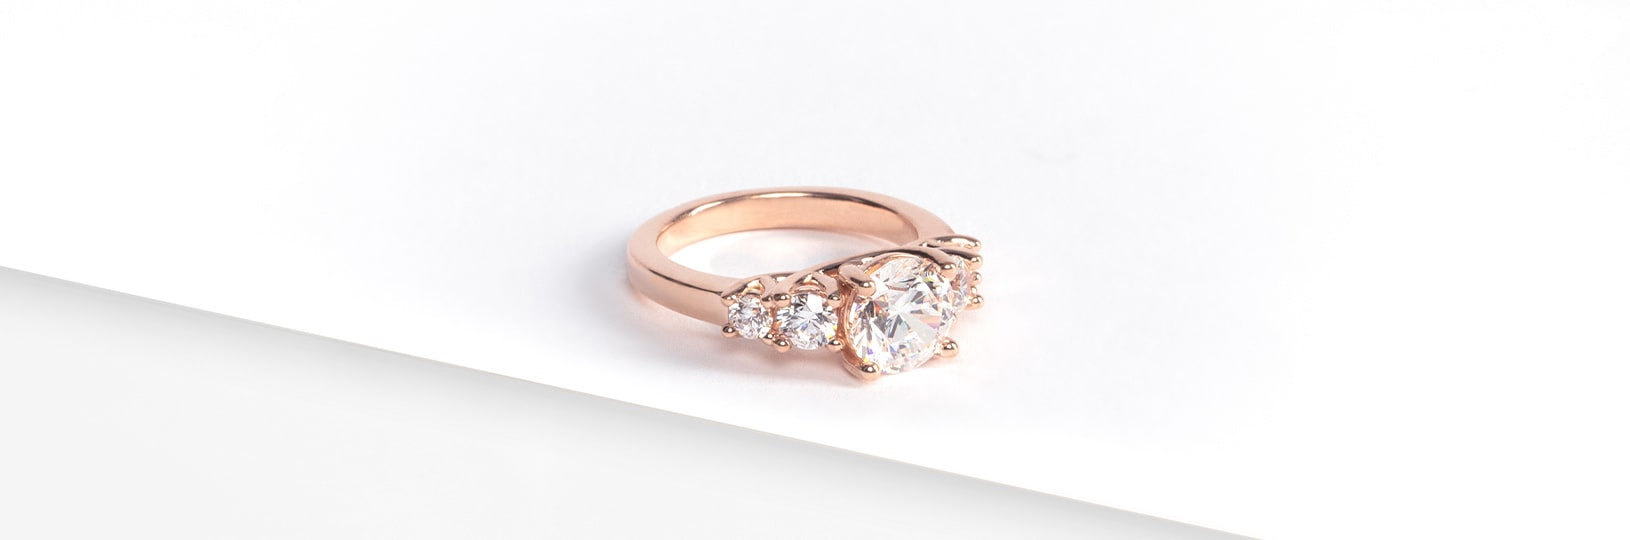 A rose gold engagement ring setting